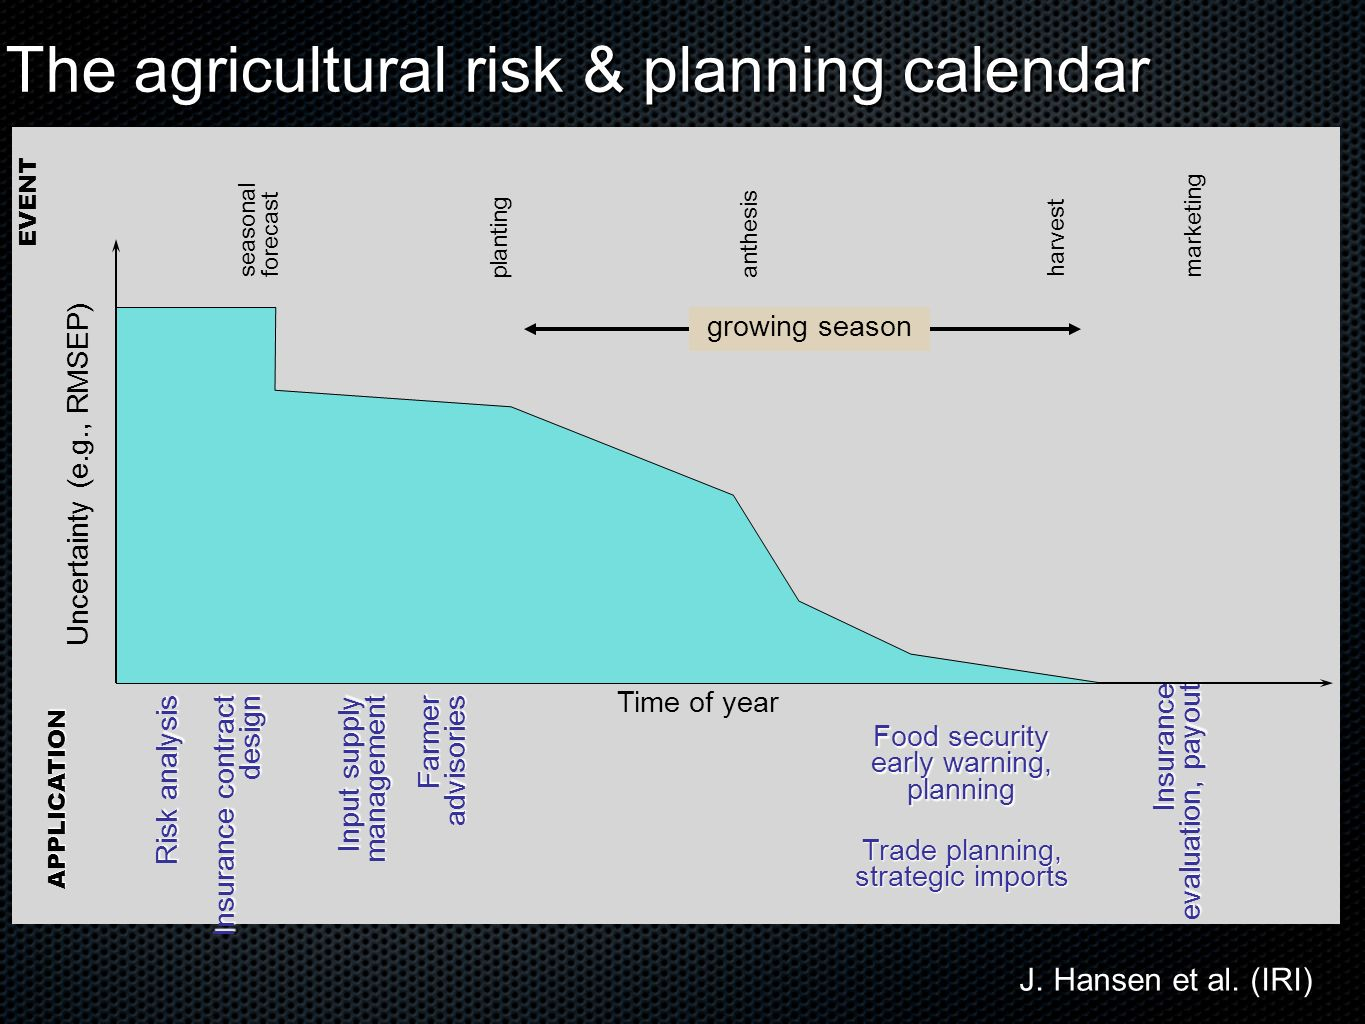 Risk analysis Input supply management Farmer advisories Food security early warning, planning Trade planning, strategic imports Insurance evaluation, payout Insurance contract design APPLICATION The agricultural risk & planning calendar Time of year Uncertainty (e.g., RMSEP) seasonal forecast planting marketing harvest anthesis growing season EVENT J.